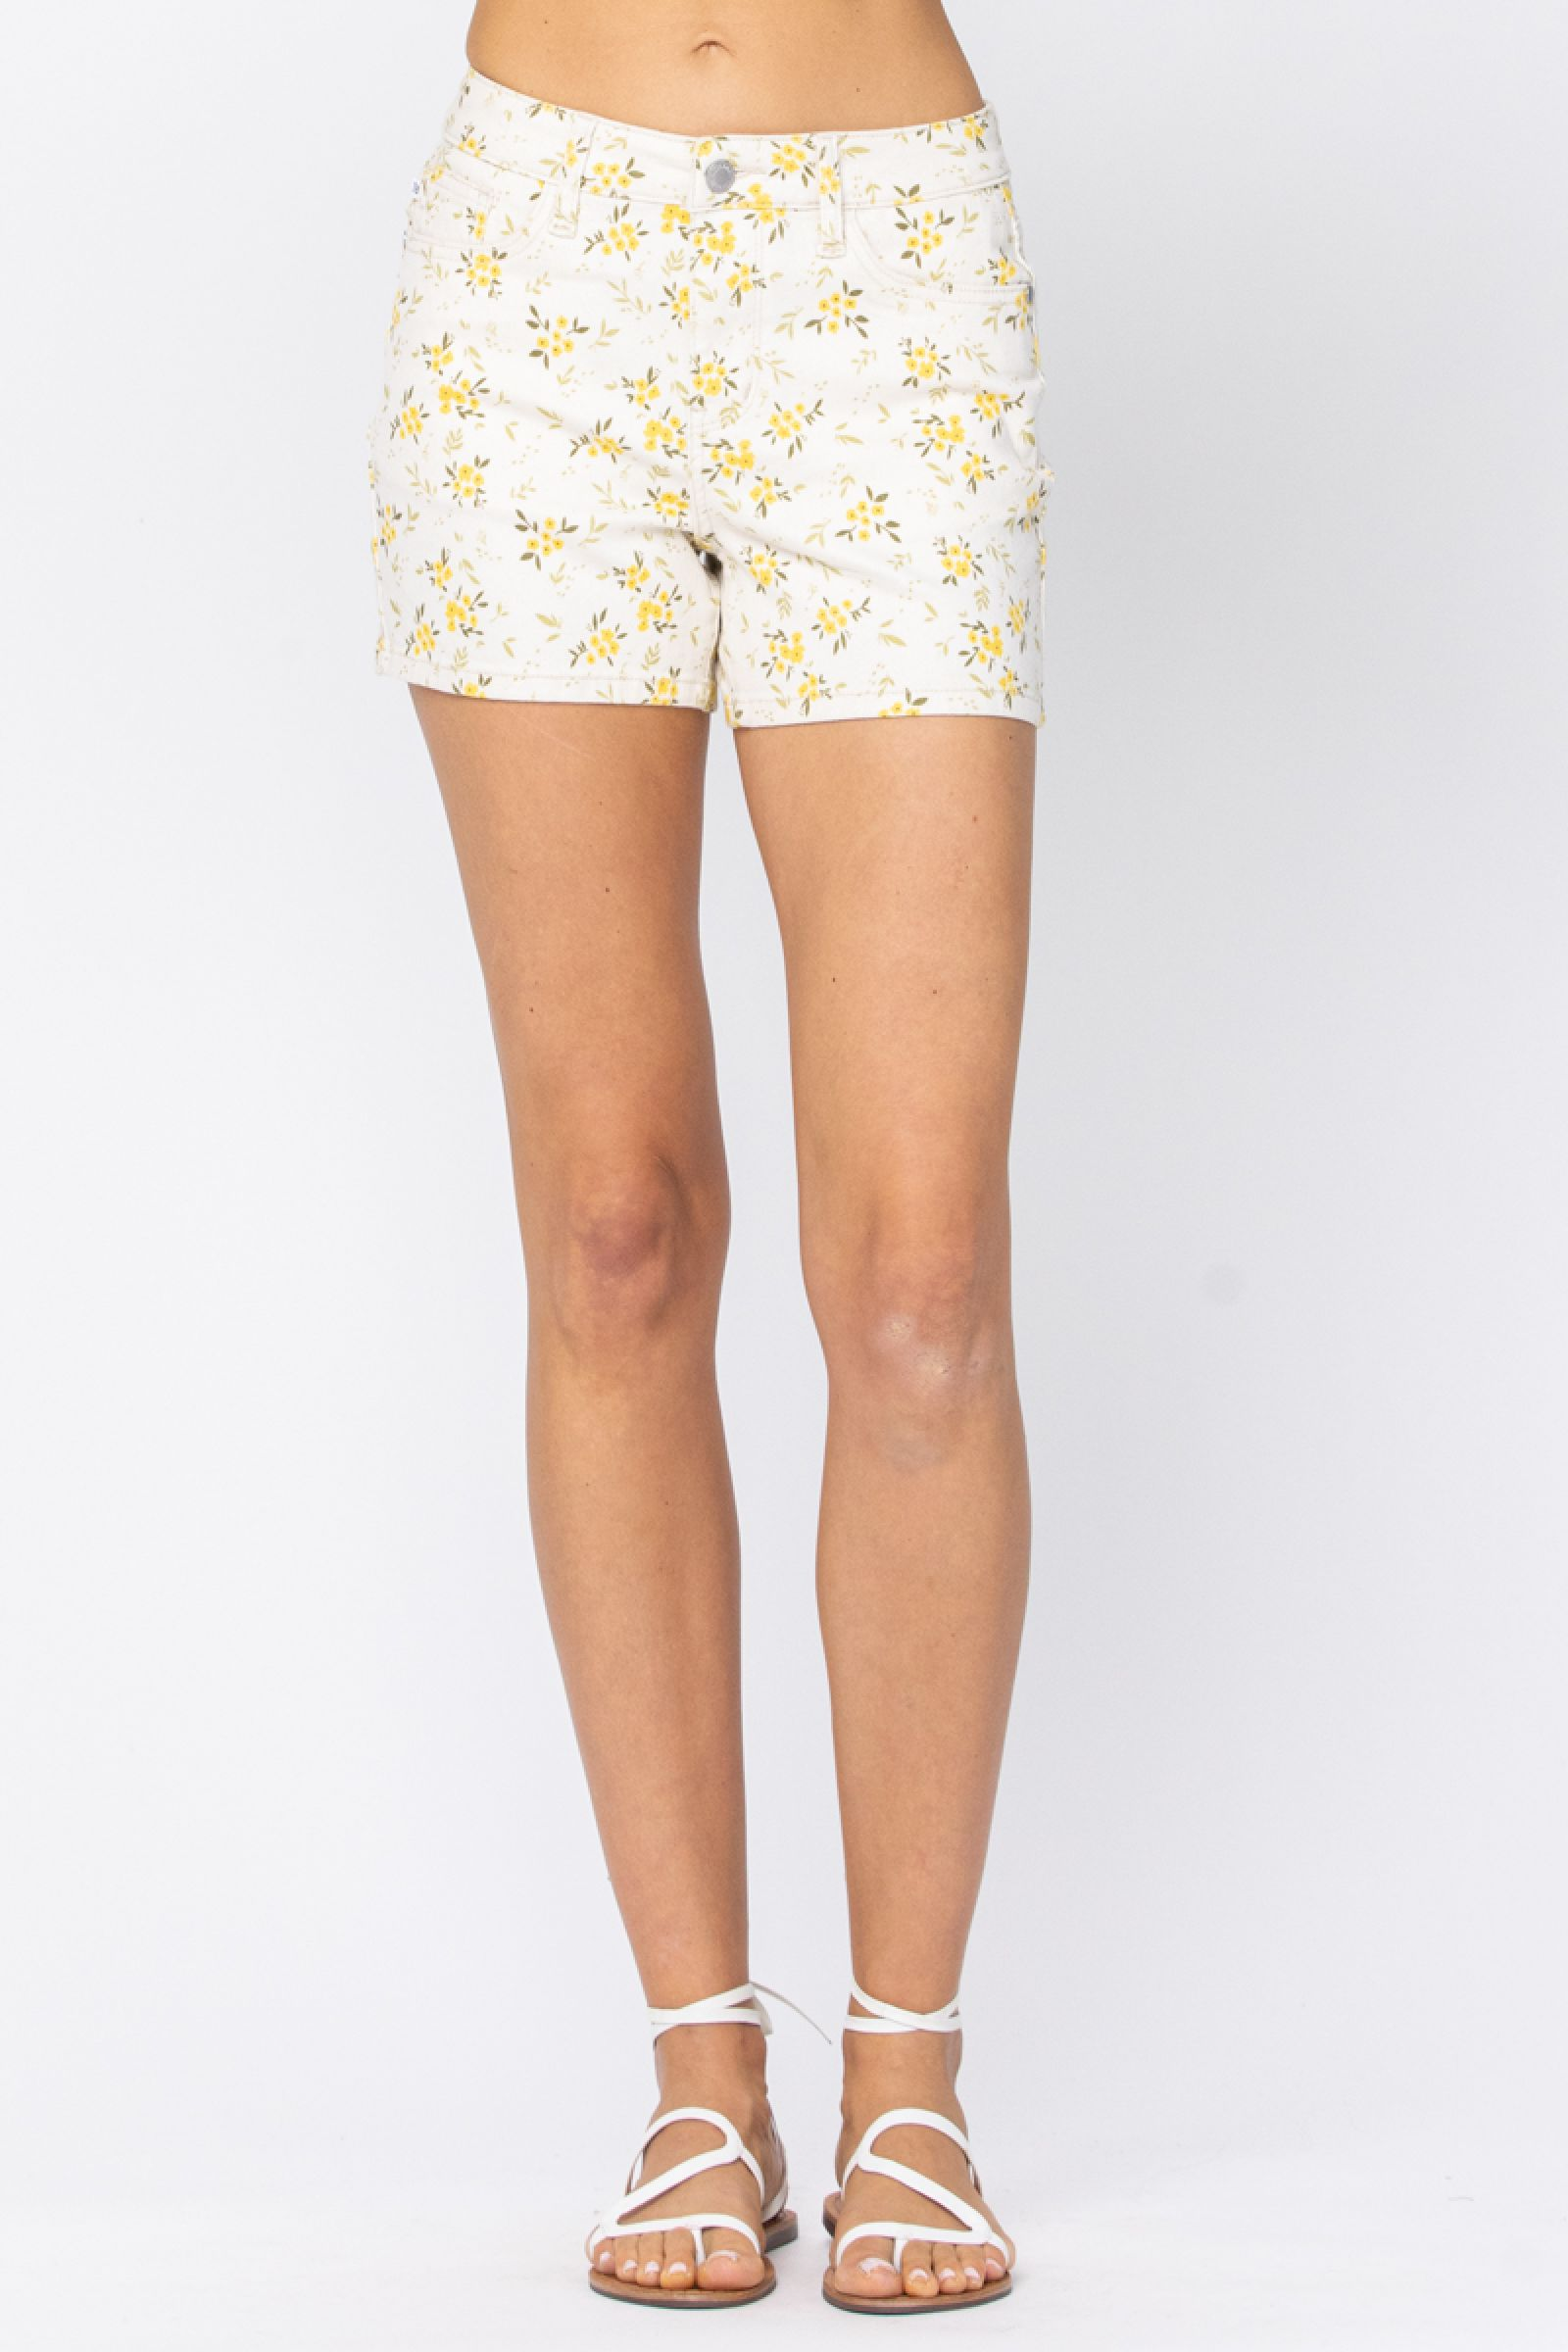 Flower Child Shorts (Preorder ETA 03/22)